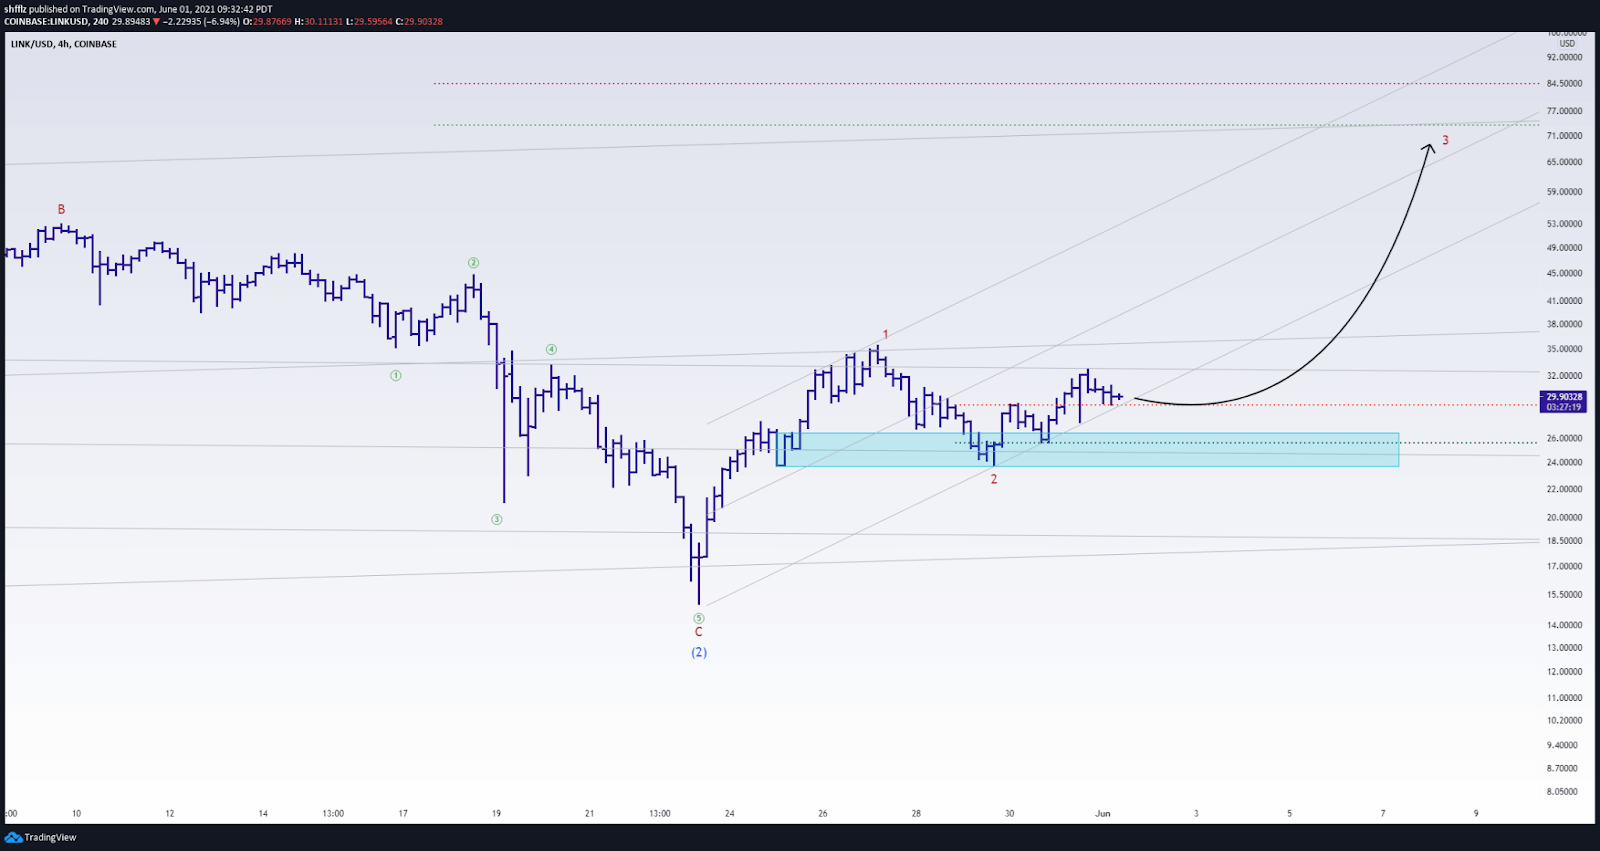 Chainlink Price Projection